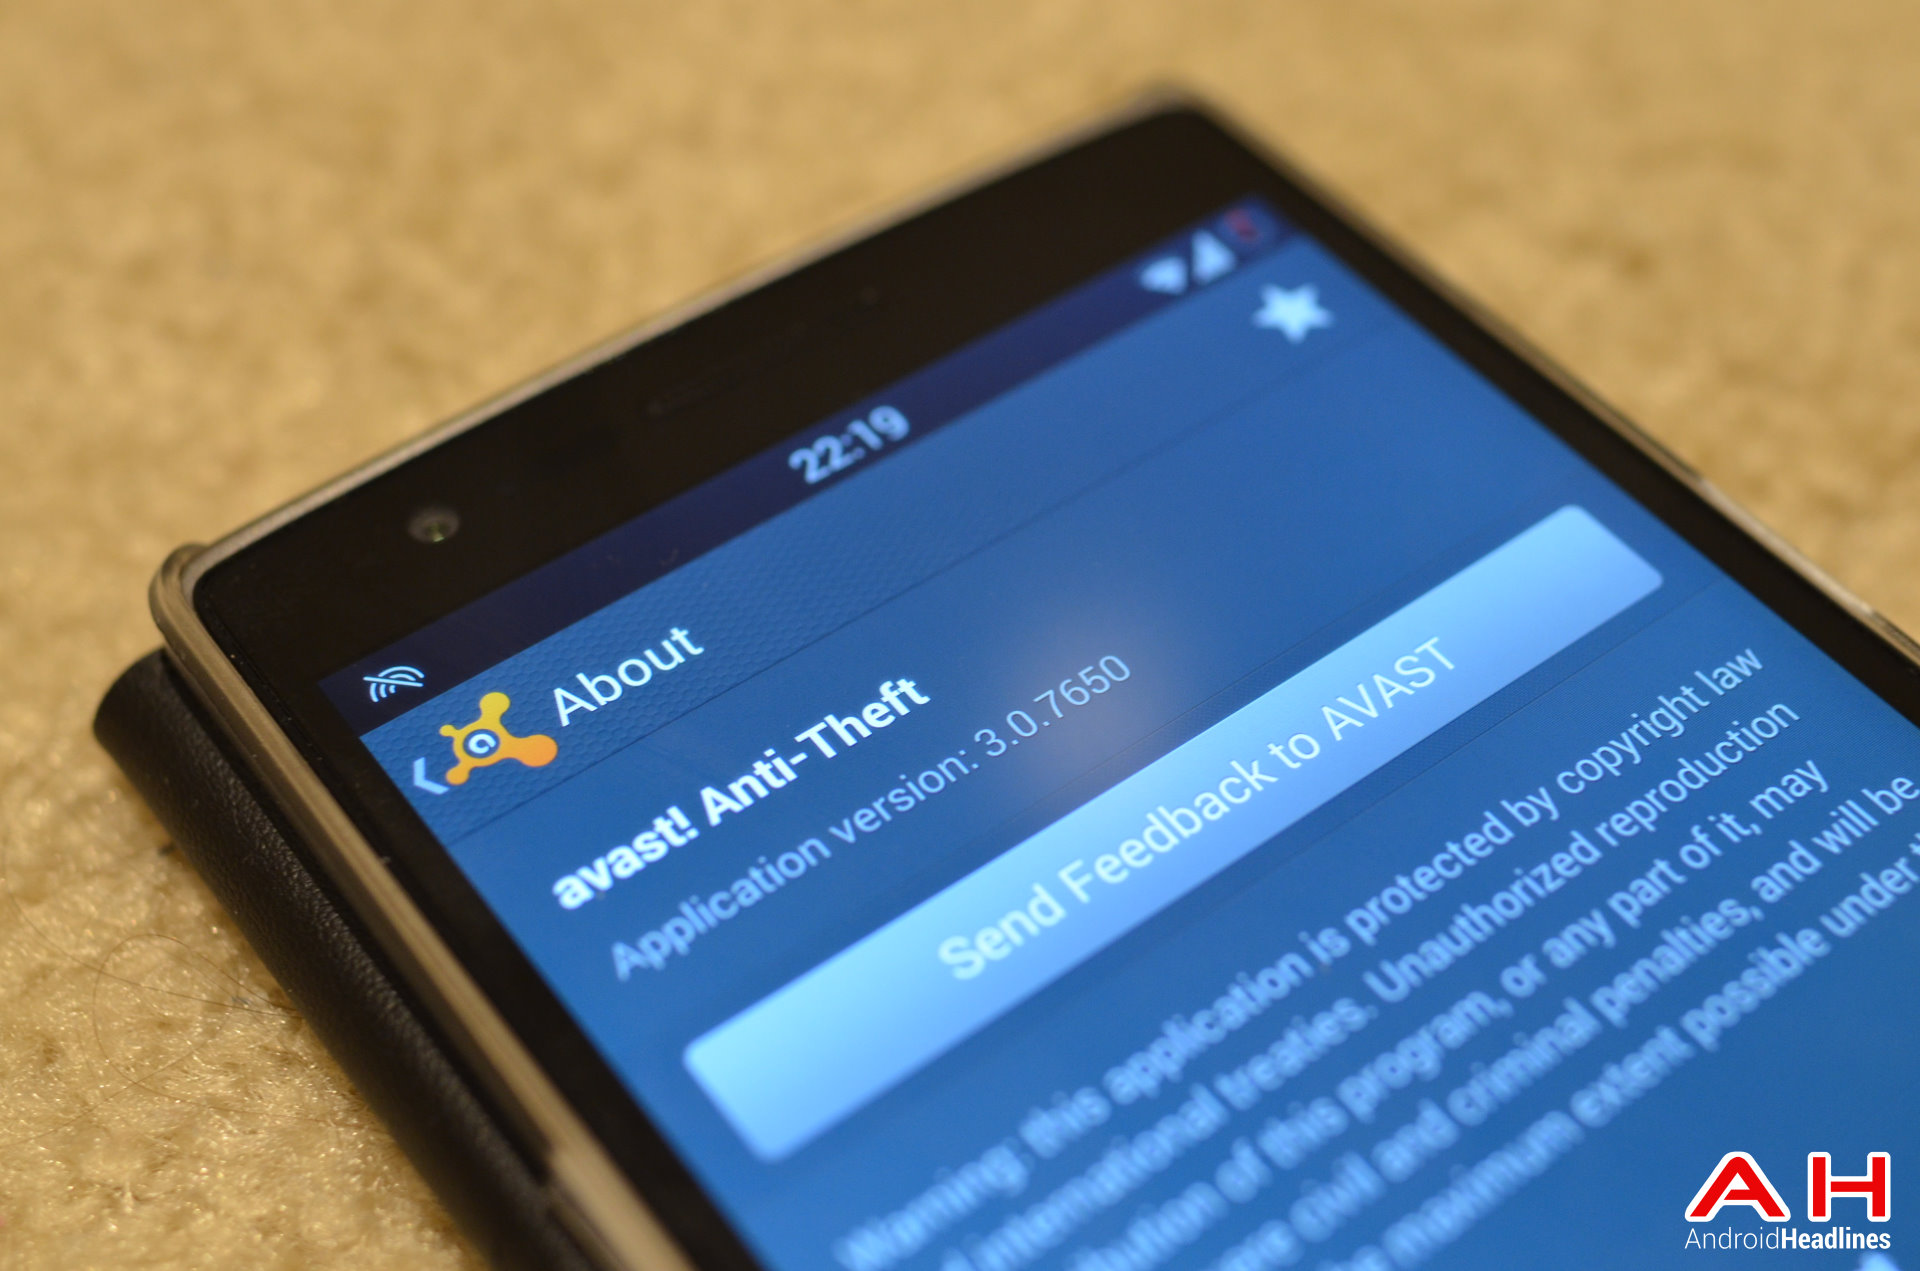 Featured: Top 10 Android Apps For Finding Your Phone